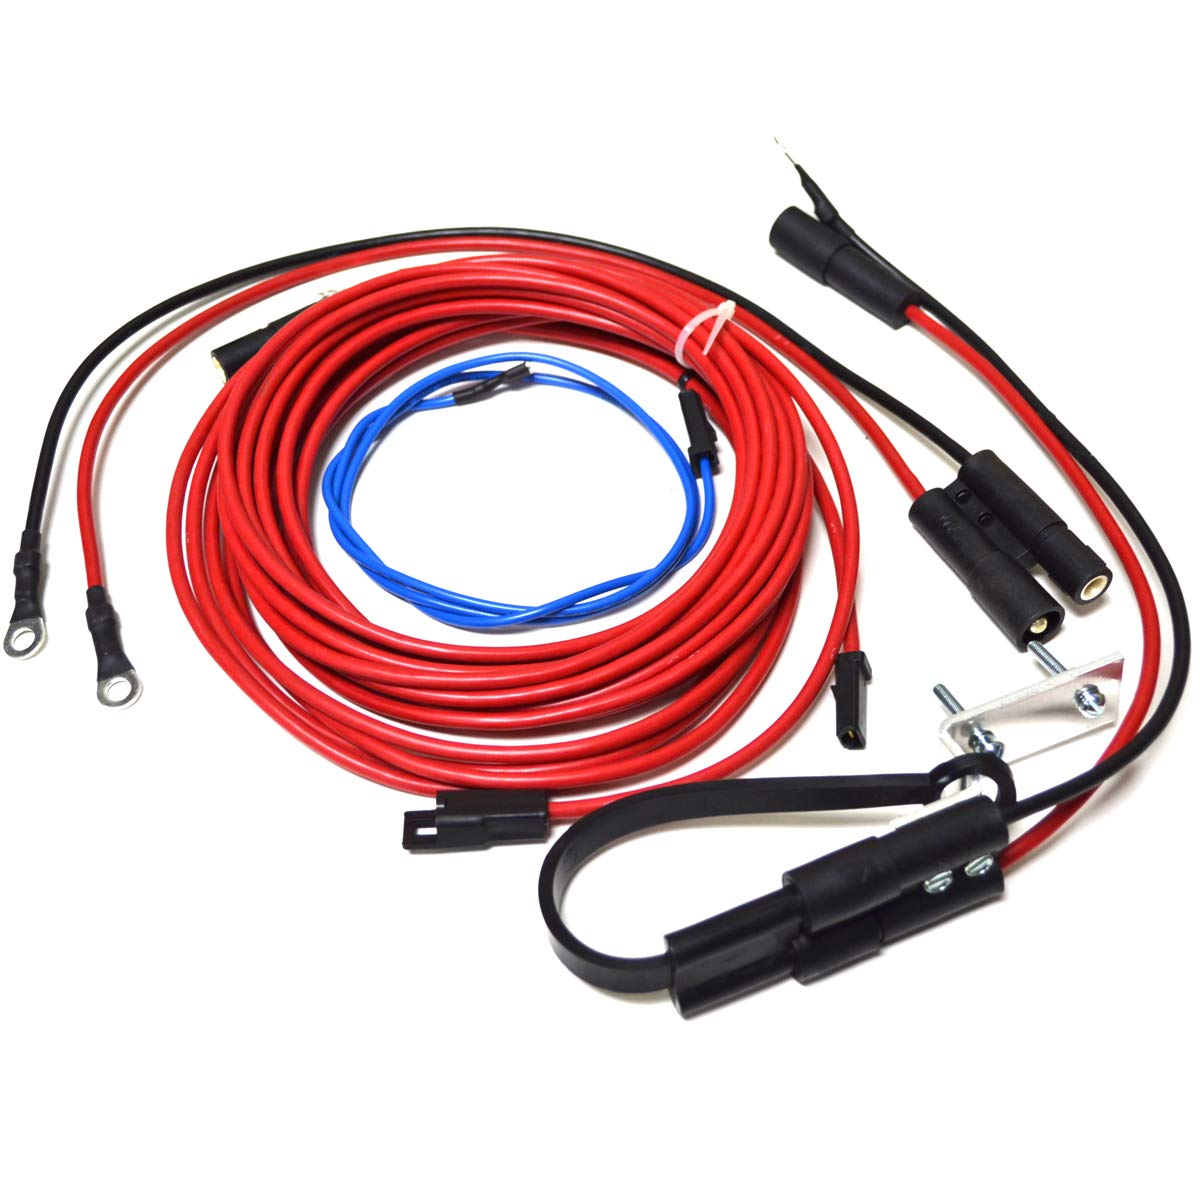 Wiring Harness for SaltDogg TGS01 TGS01A Salt Spreaders Buyers 0206500 by Replaces Buyers